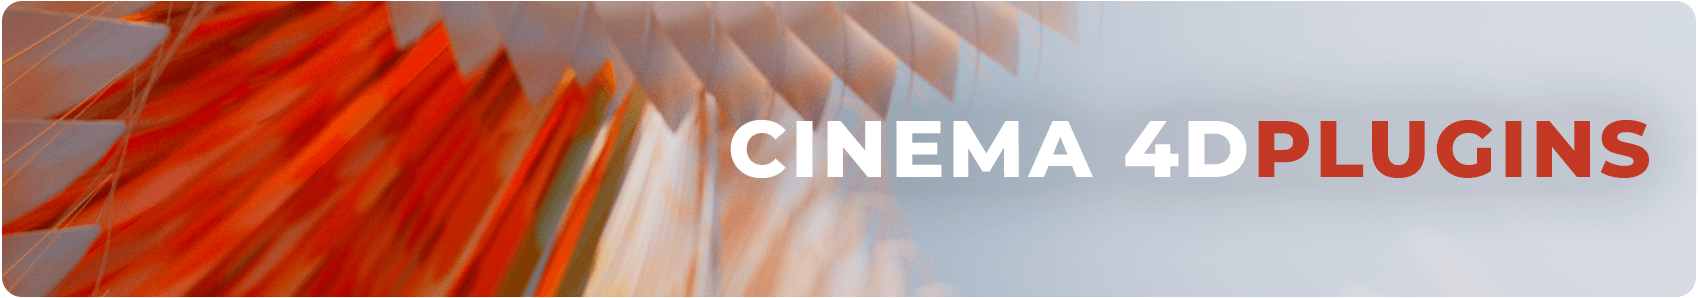 Maxon Cinema 4D Header